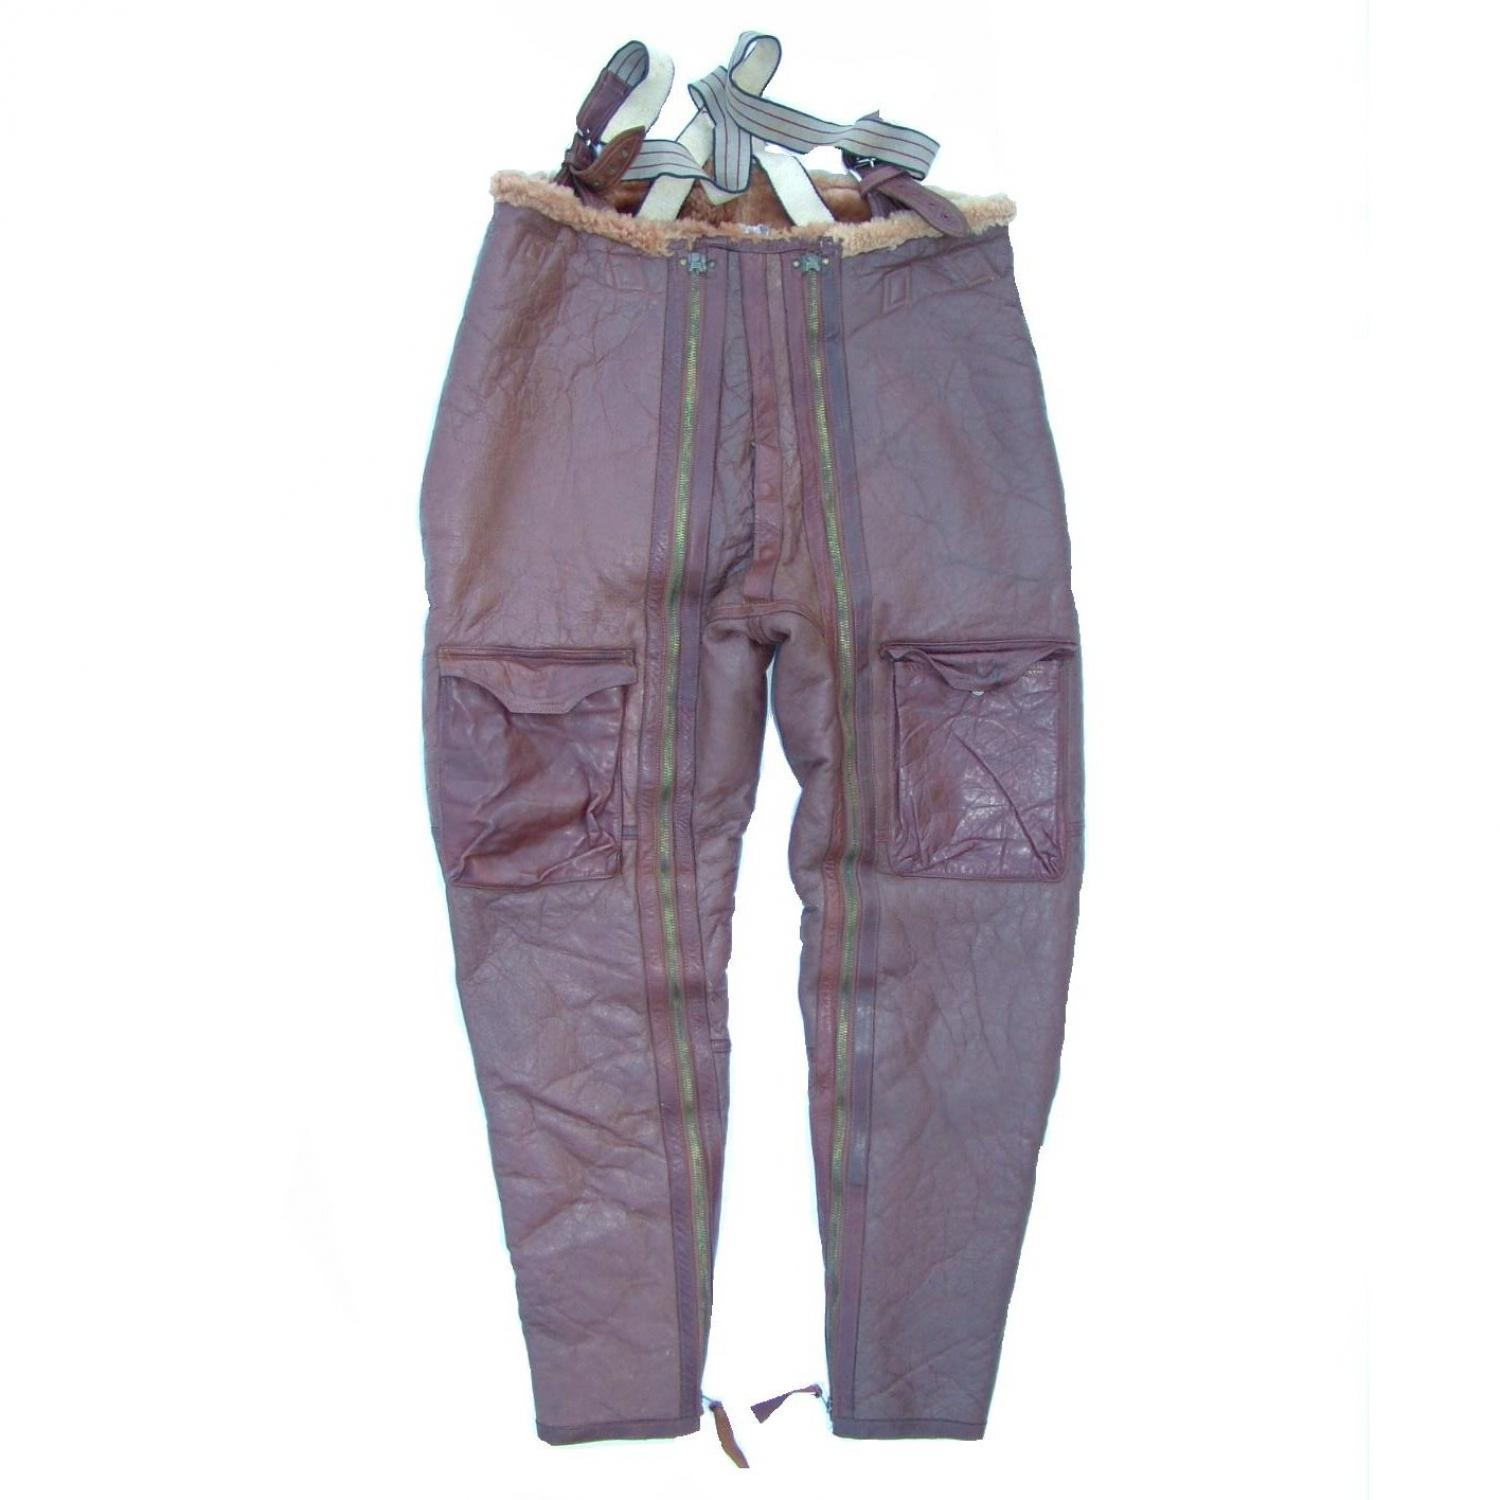 RAF 'Irvin' Flying Suit Trousers